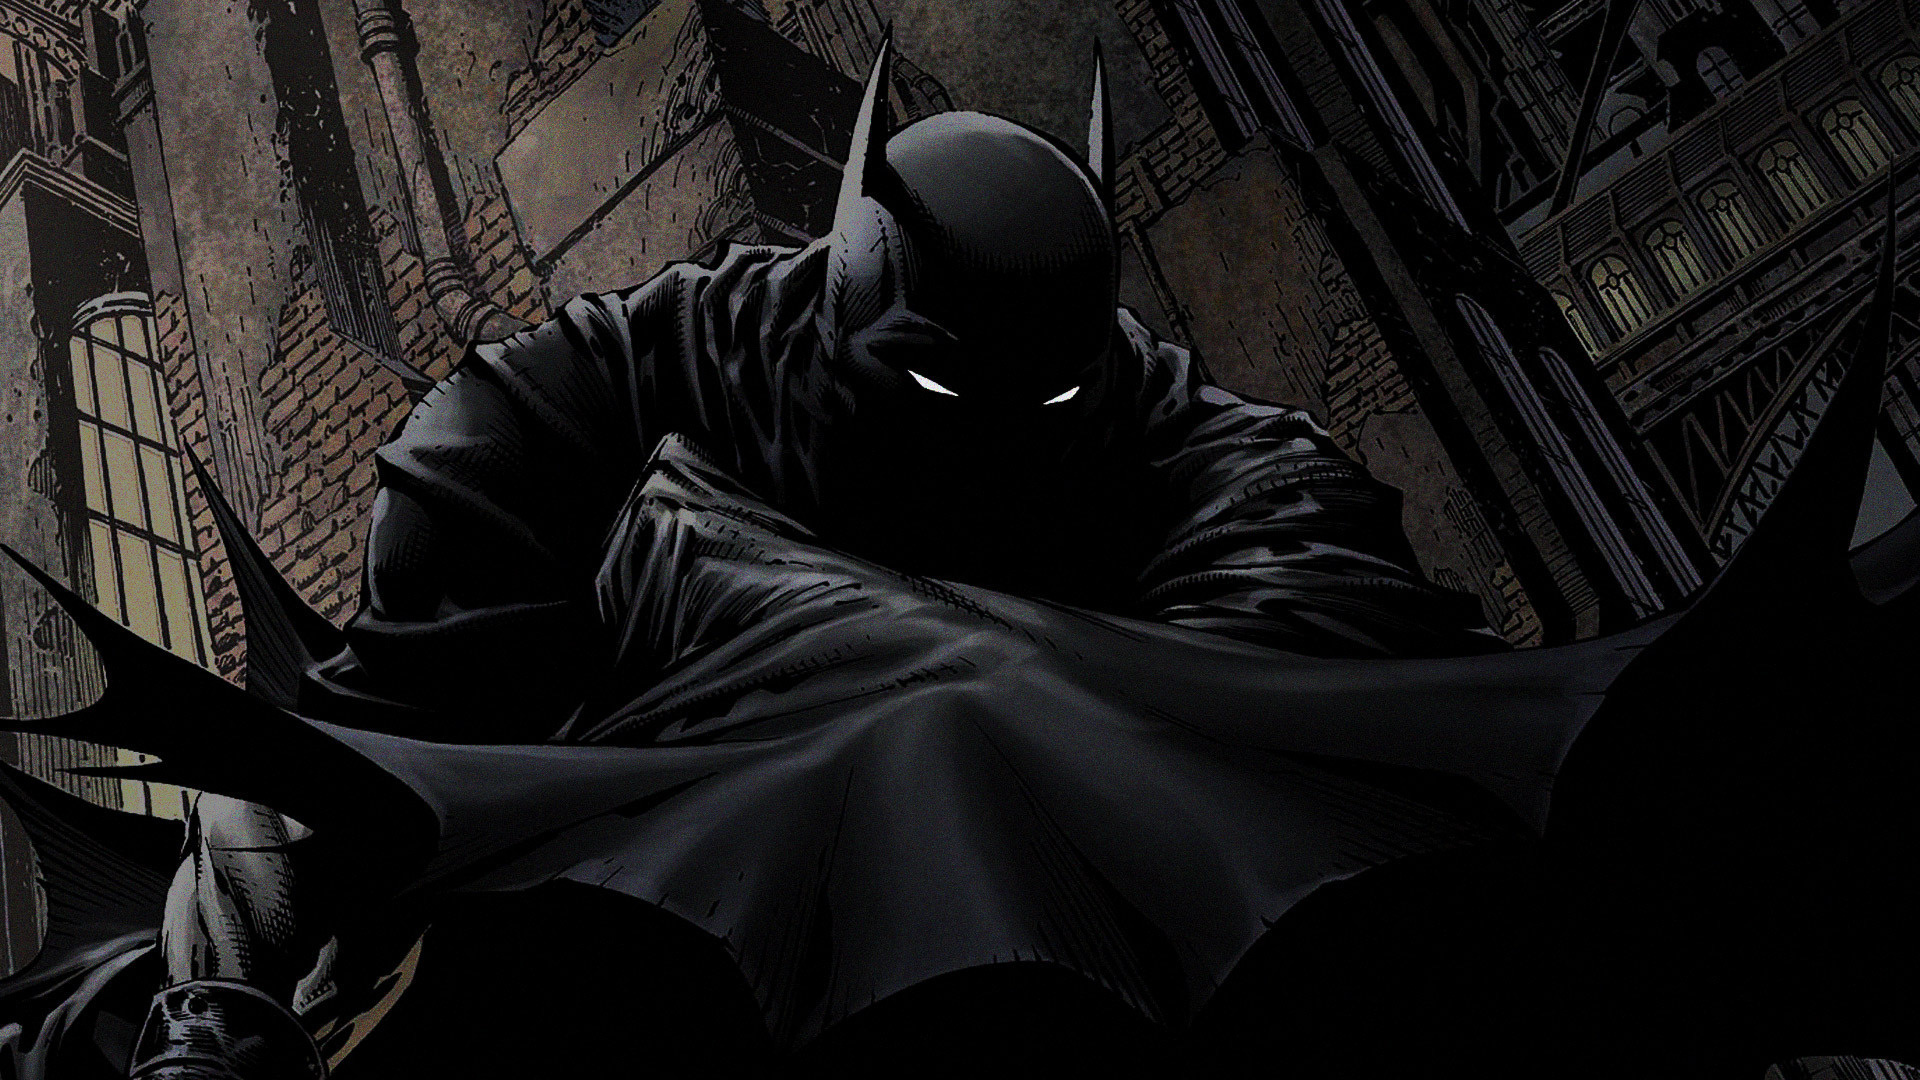 Batman HD Wallpapers Batman Images 1920x1080